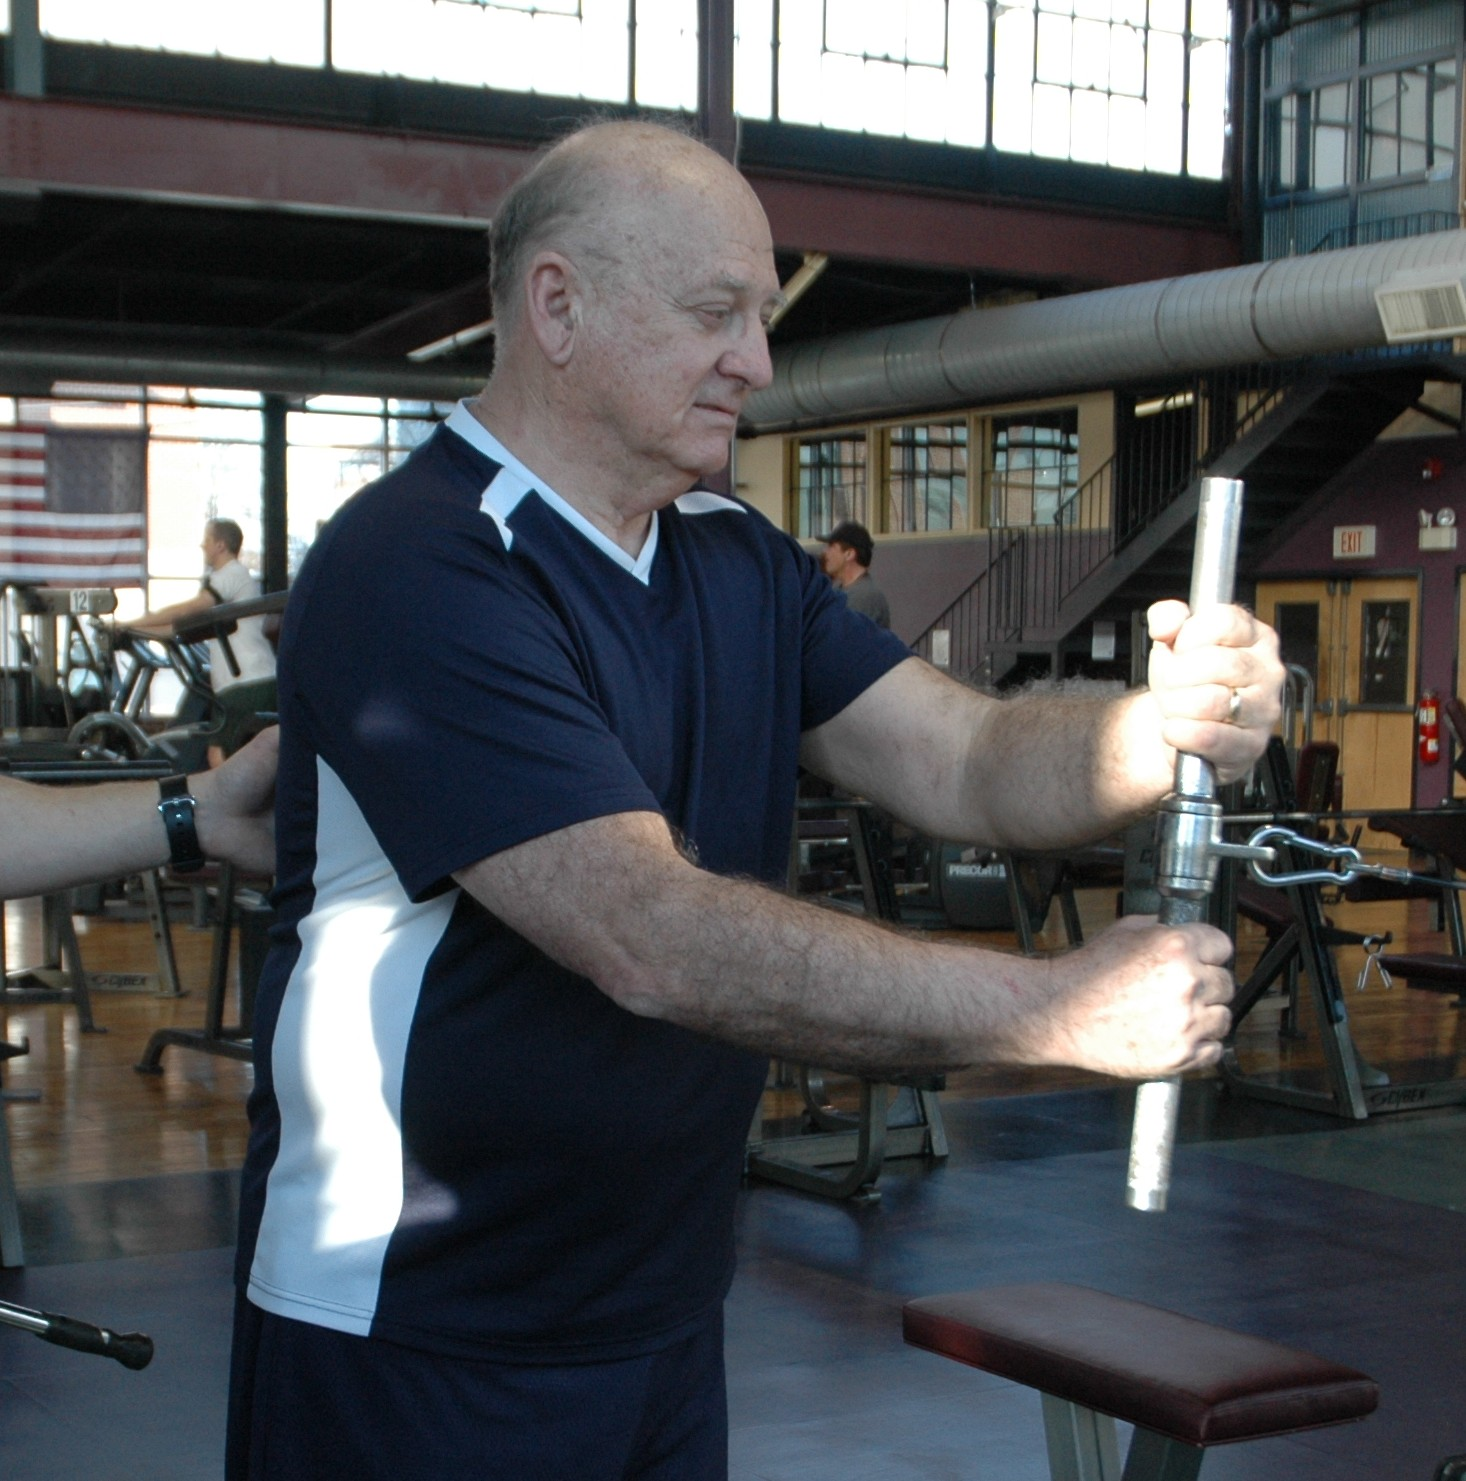 Strengthmaster Author At Vintage Strength Training: Weight Training Appears Key To Controlling Belly Fat